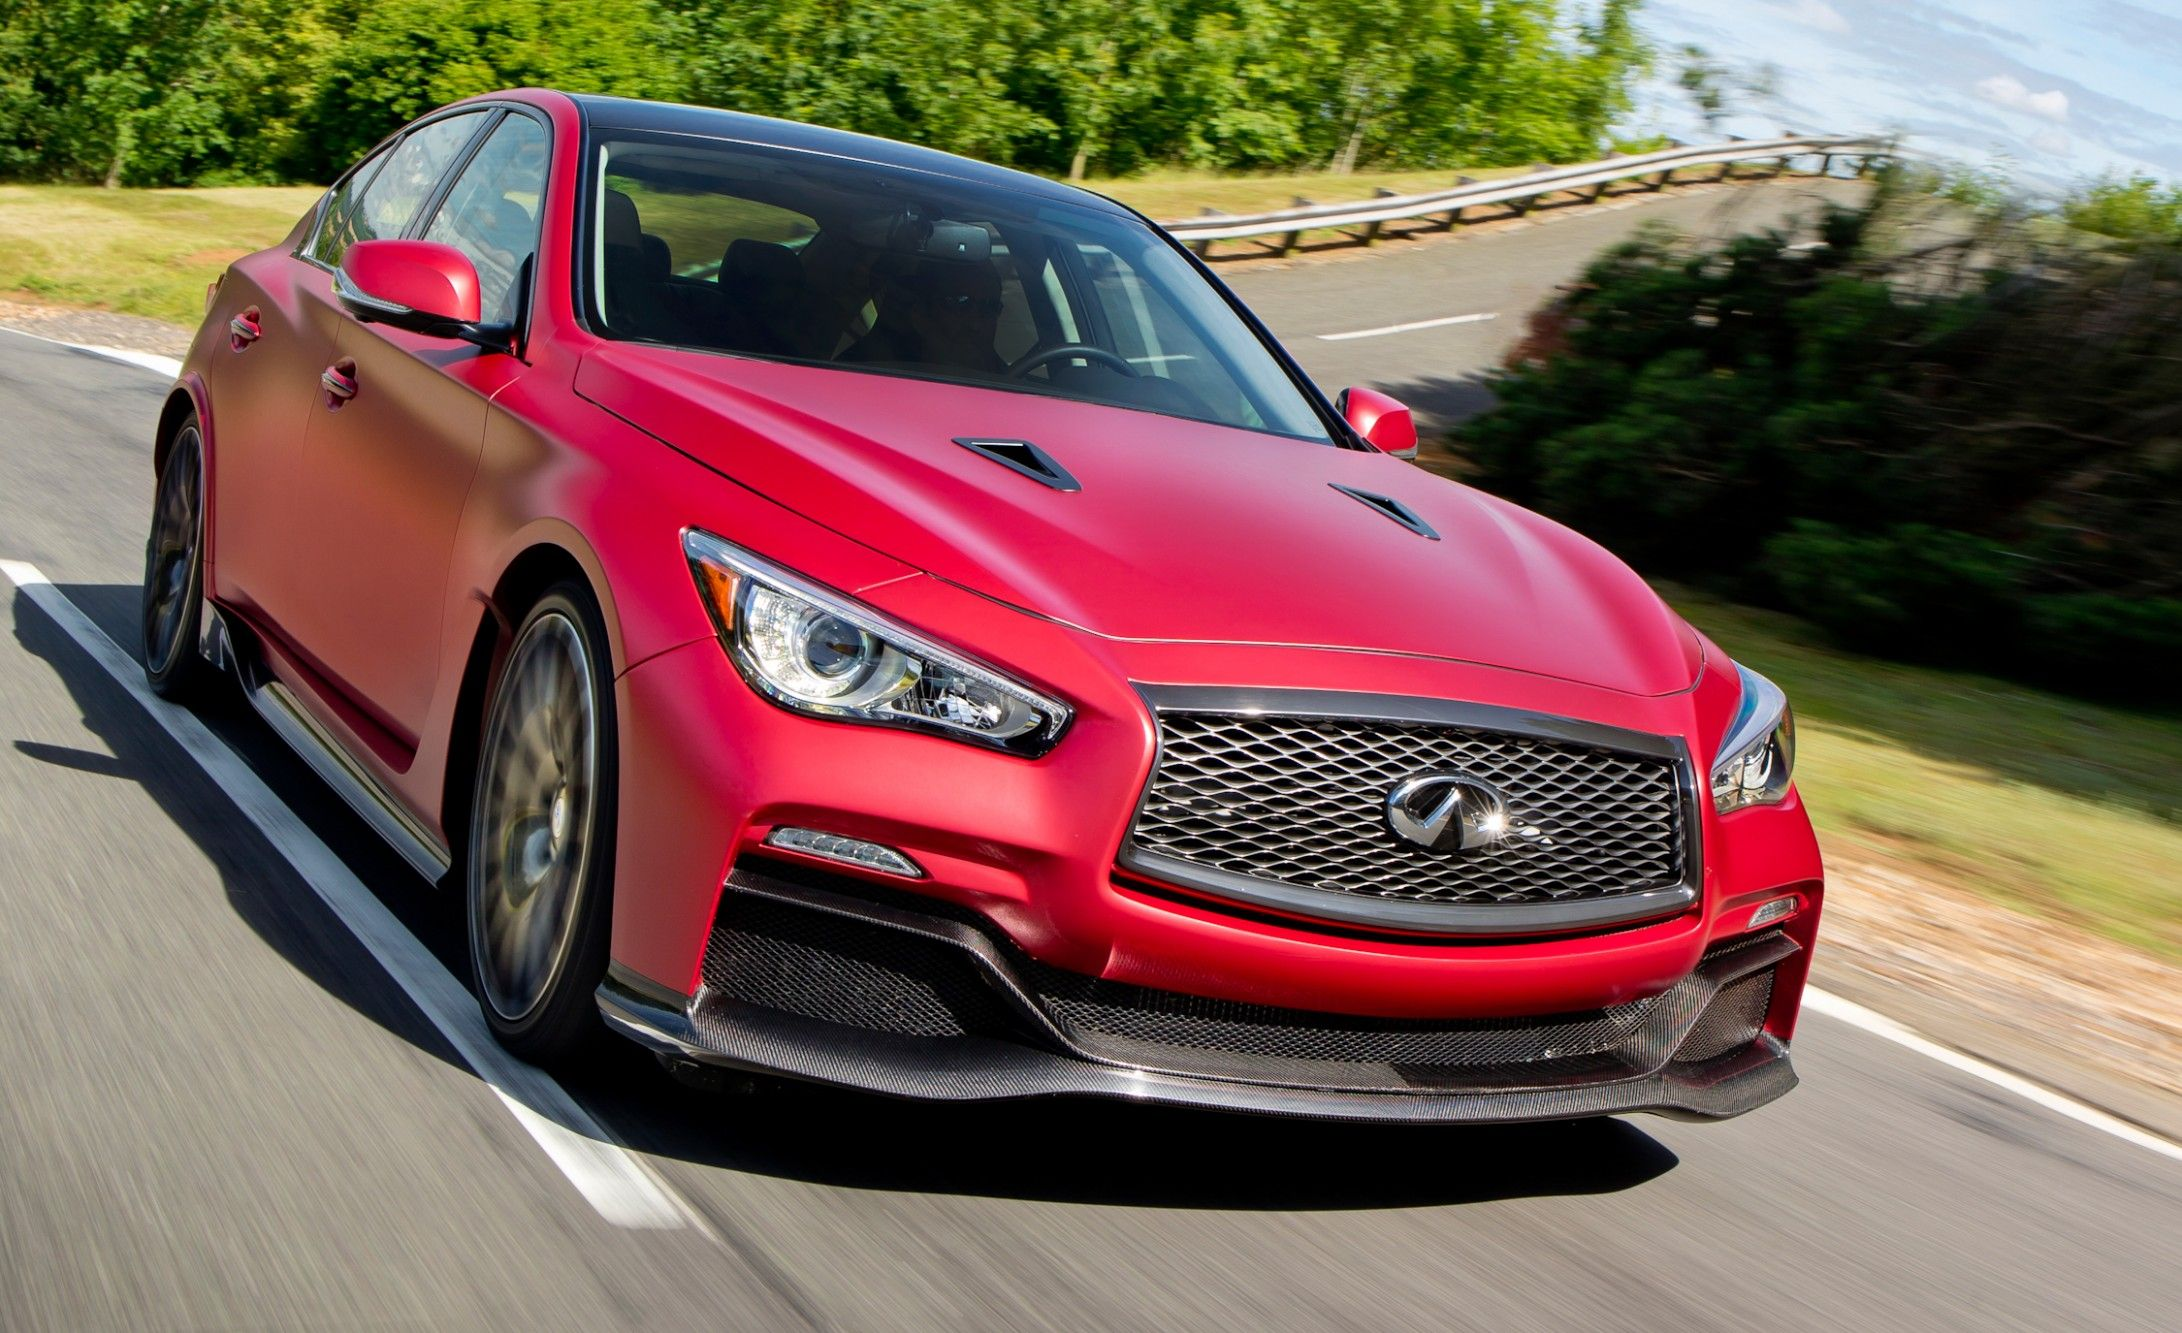 2021 infiniti q50 coupe eau rouge price design and